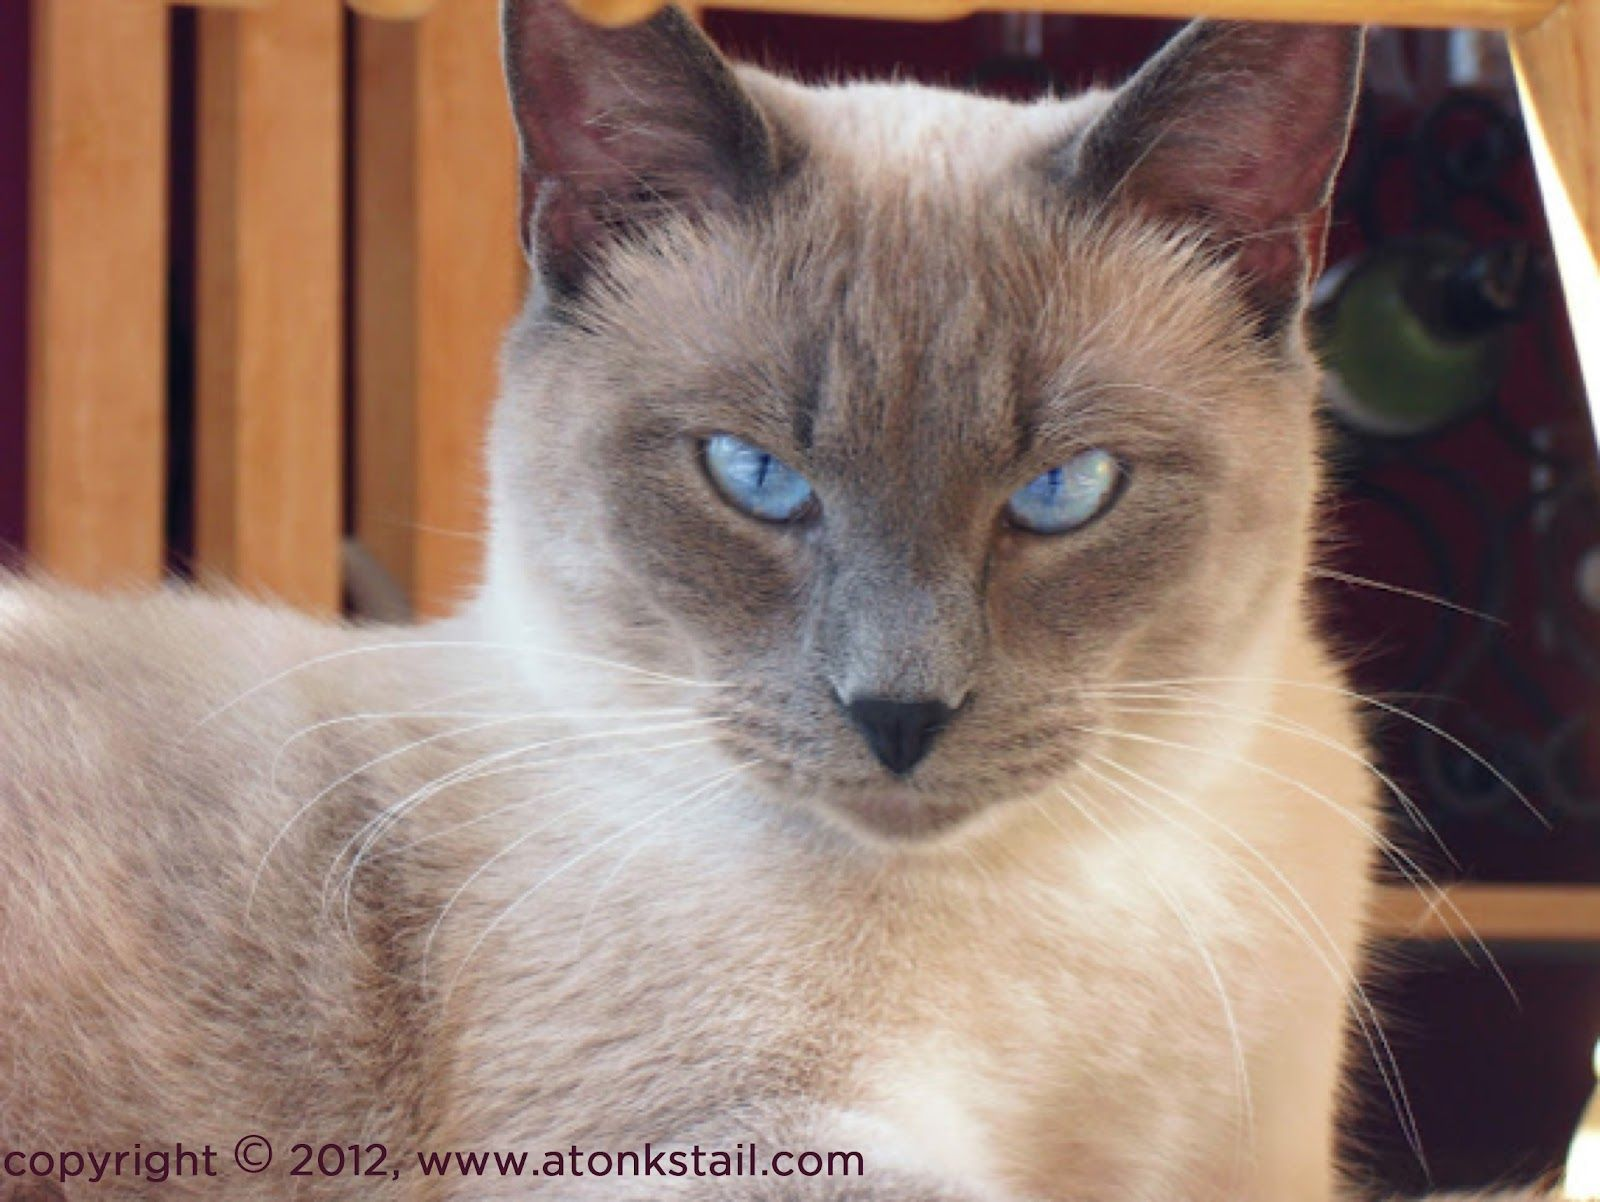 A Tonk S Tail Err Tale Cat People Cat Photo Cats